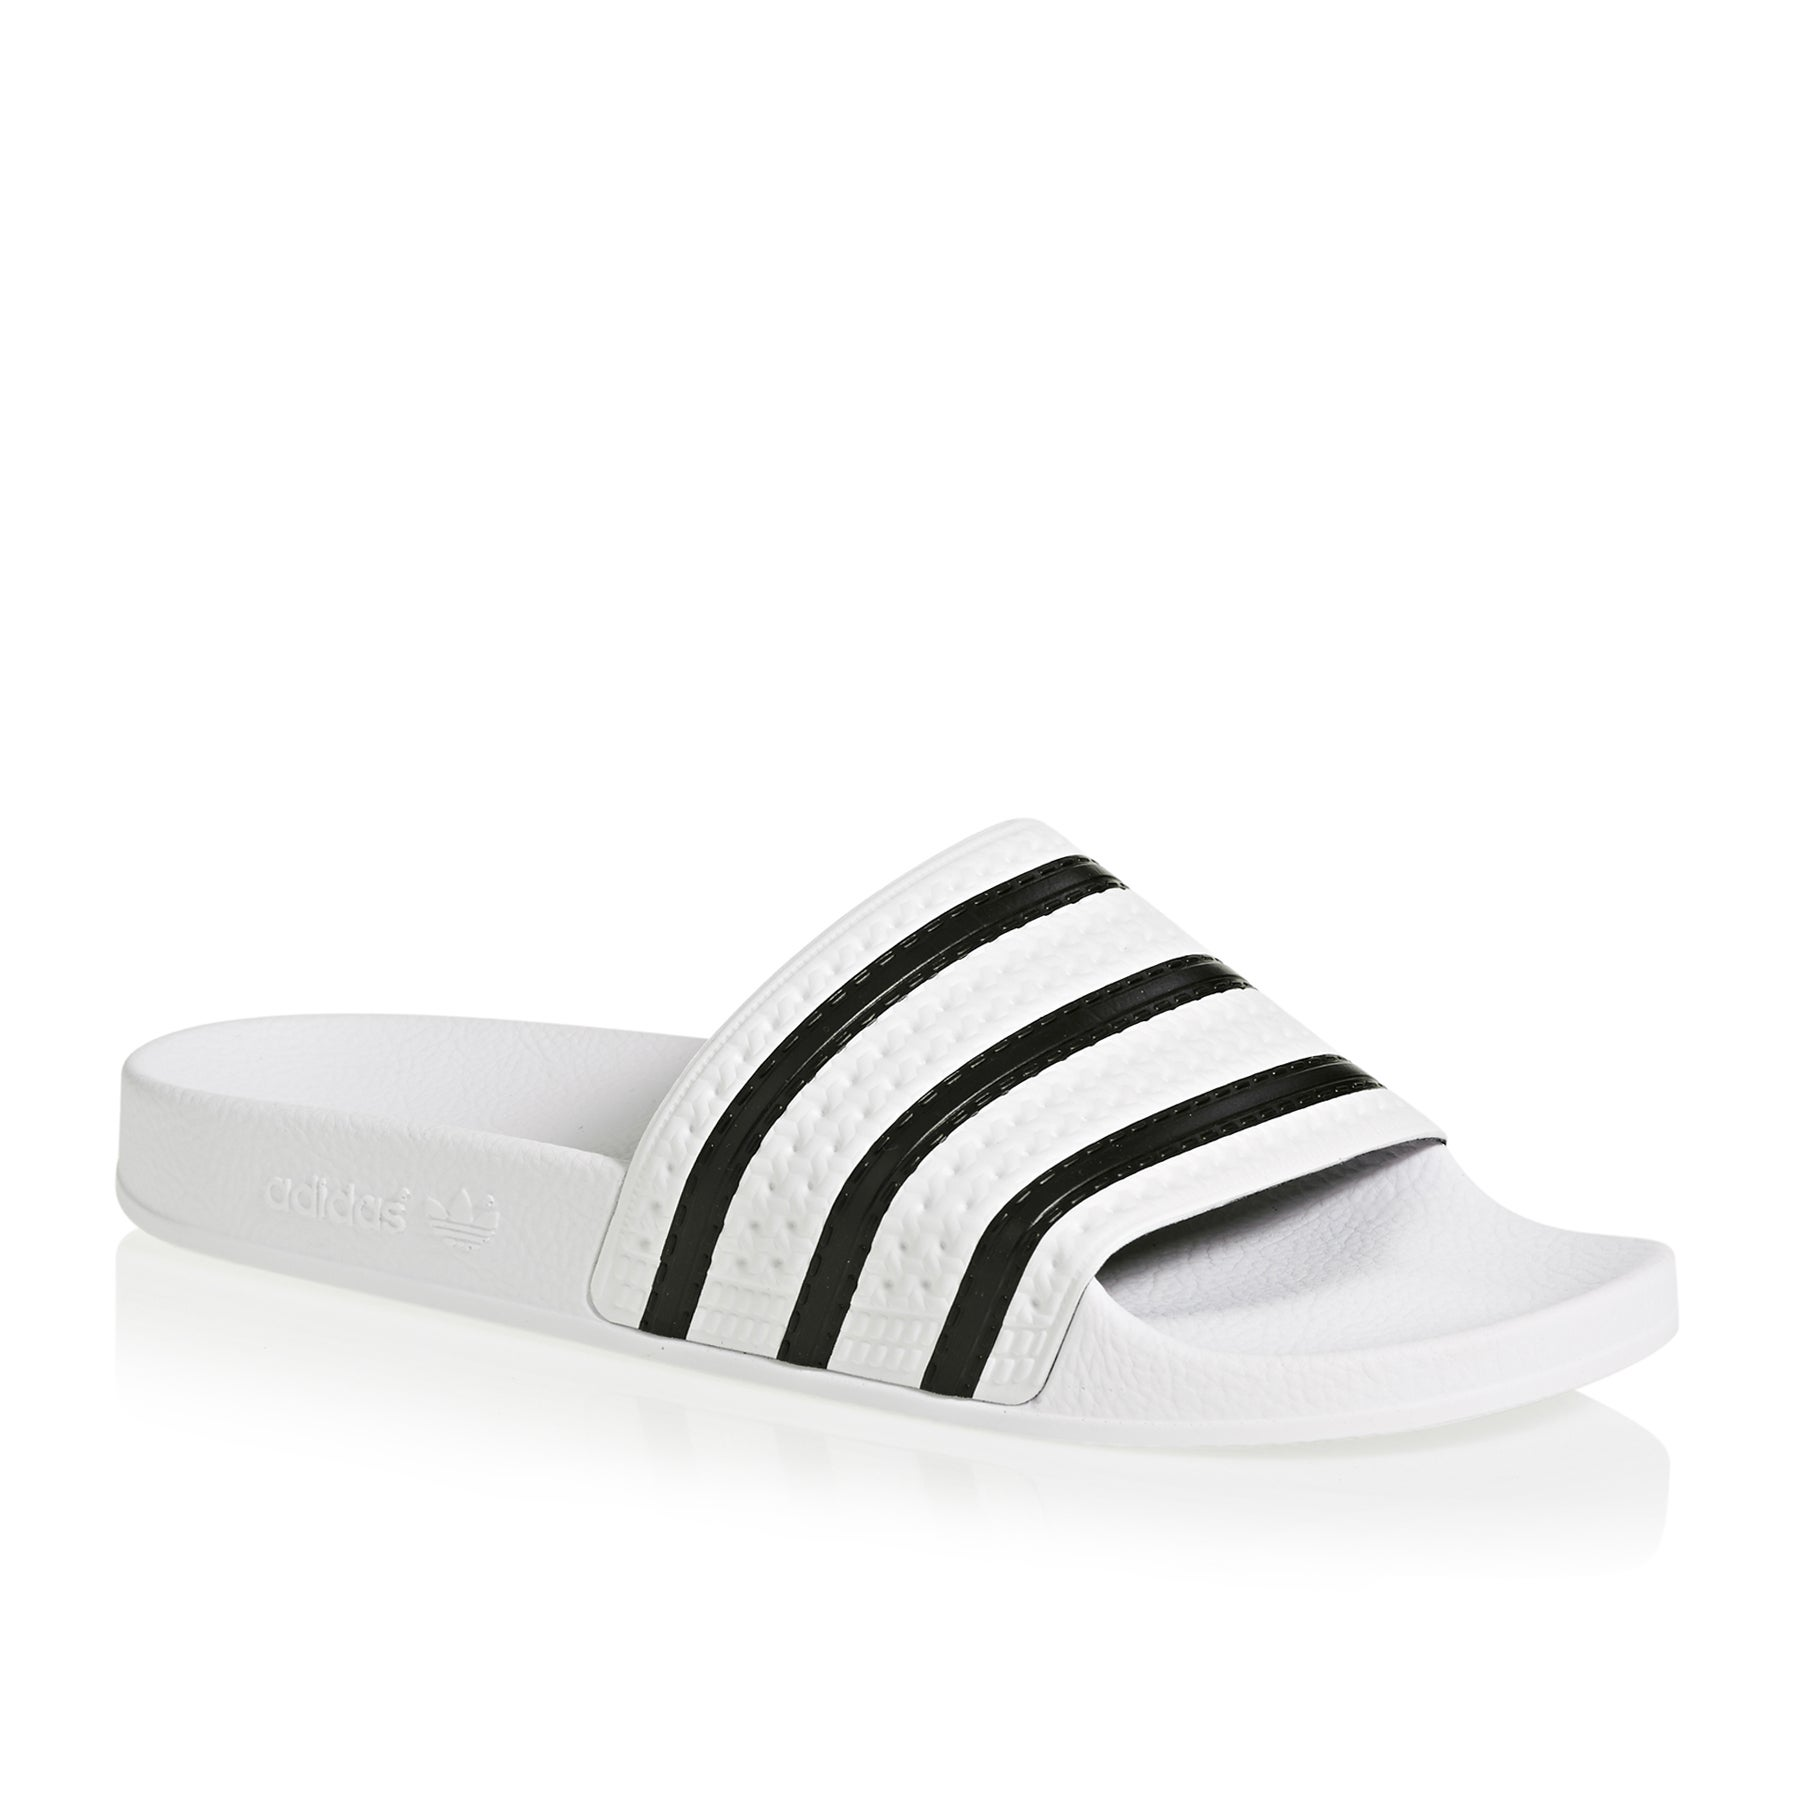 Adidas Originals Adilette Slider Sandals